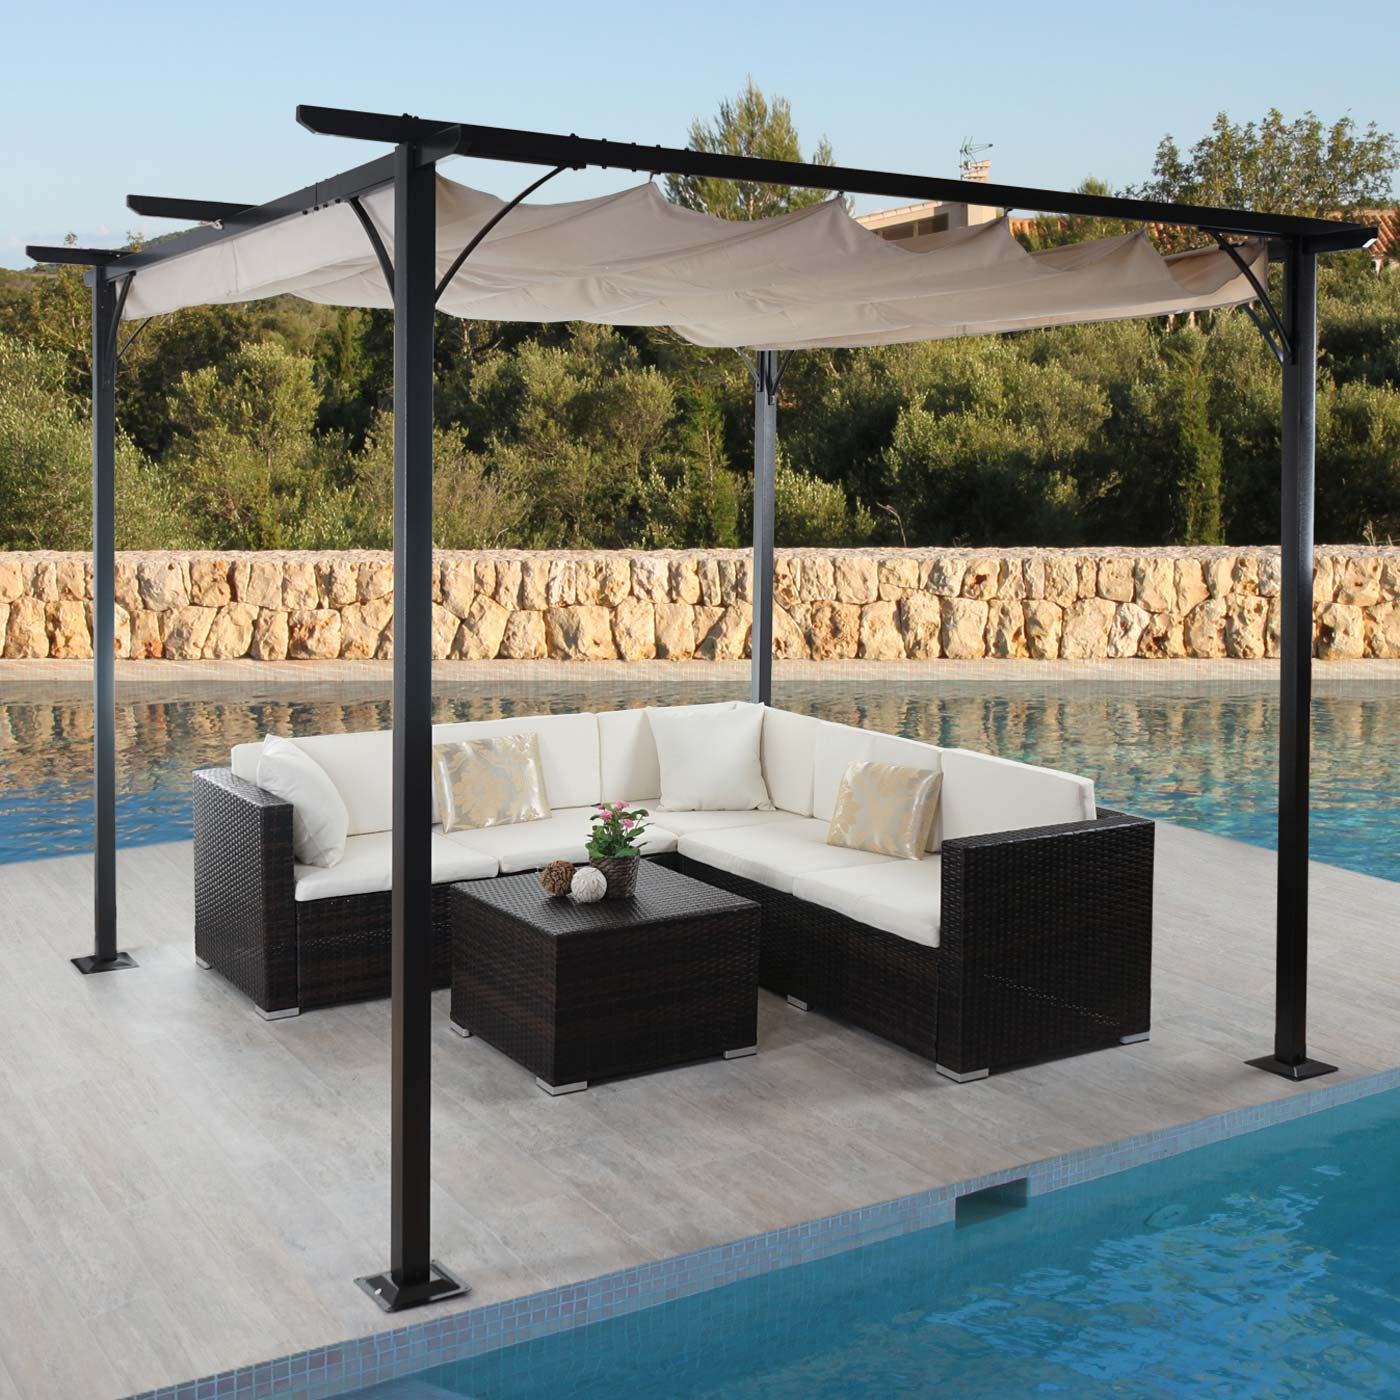 pergola avila garten pavillon 3x3m creme. Black Bedroom Furniture Sets. Home Design Ideas